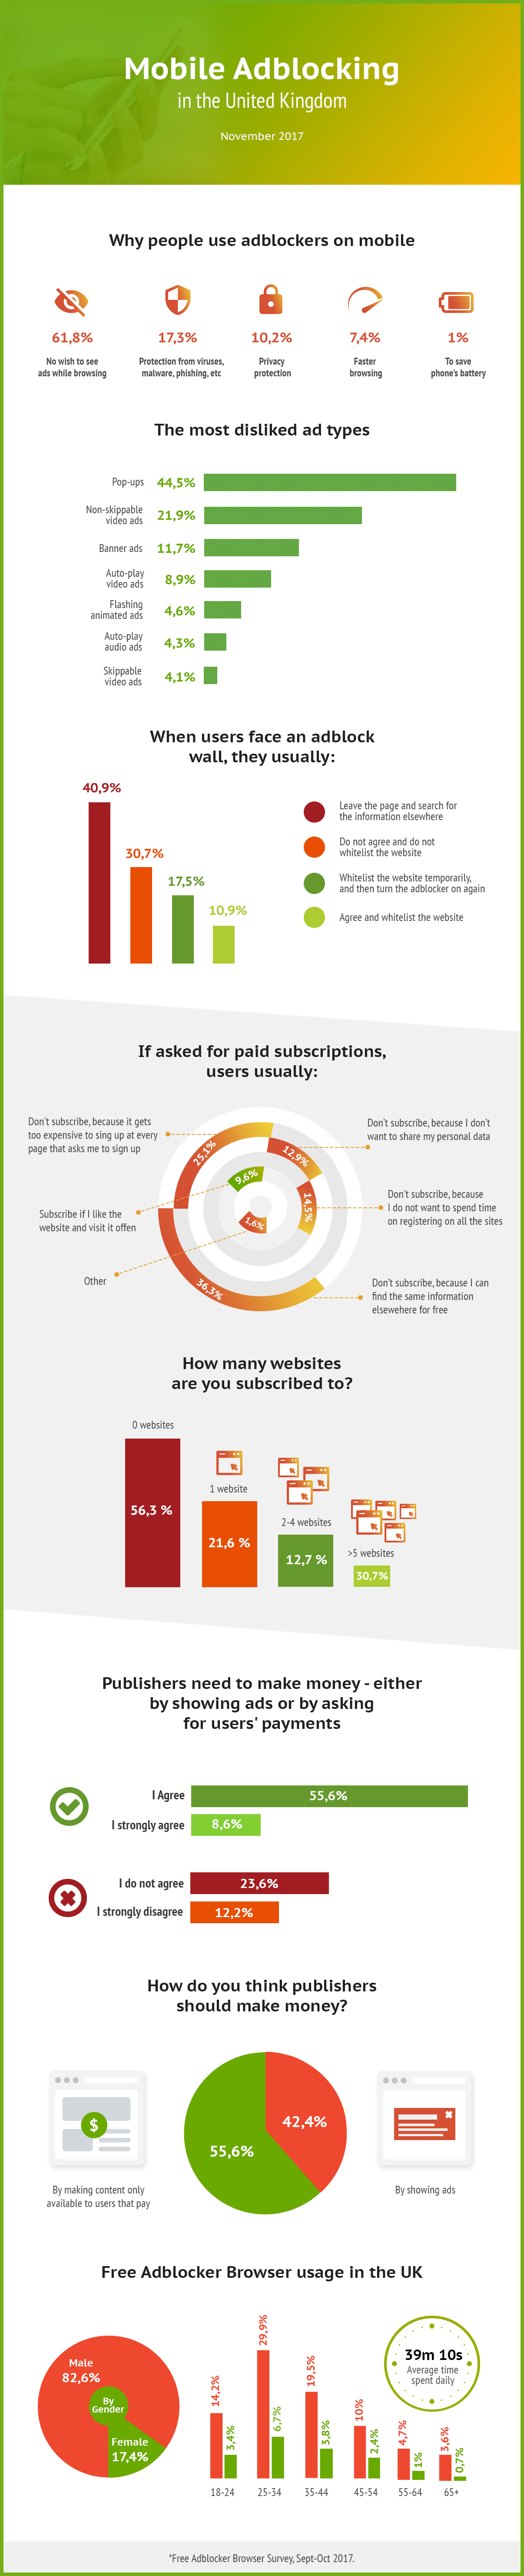 Infographic about mobile adblocking in the UK